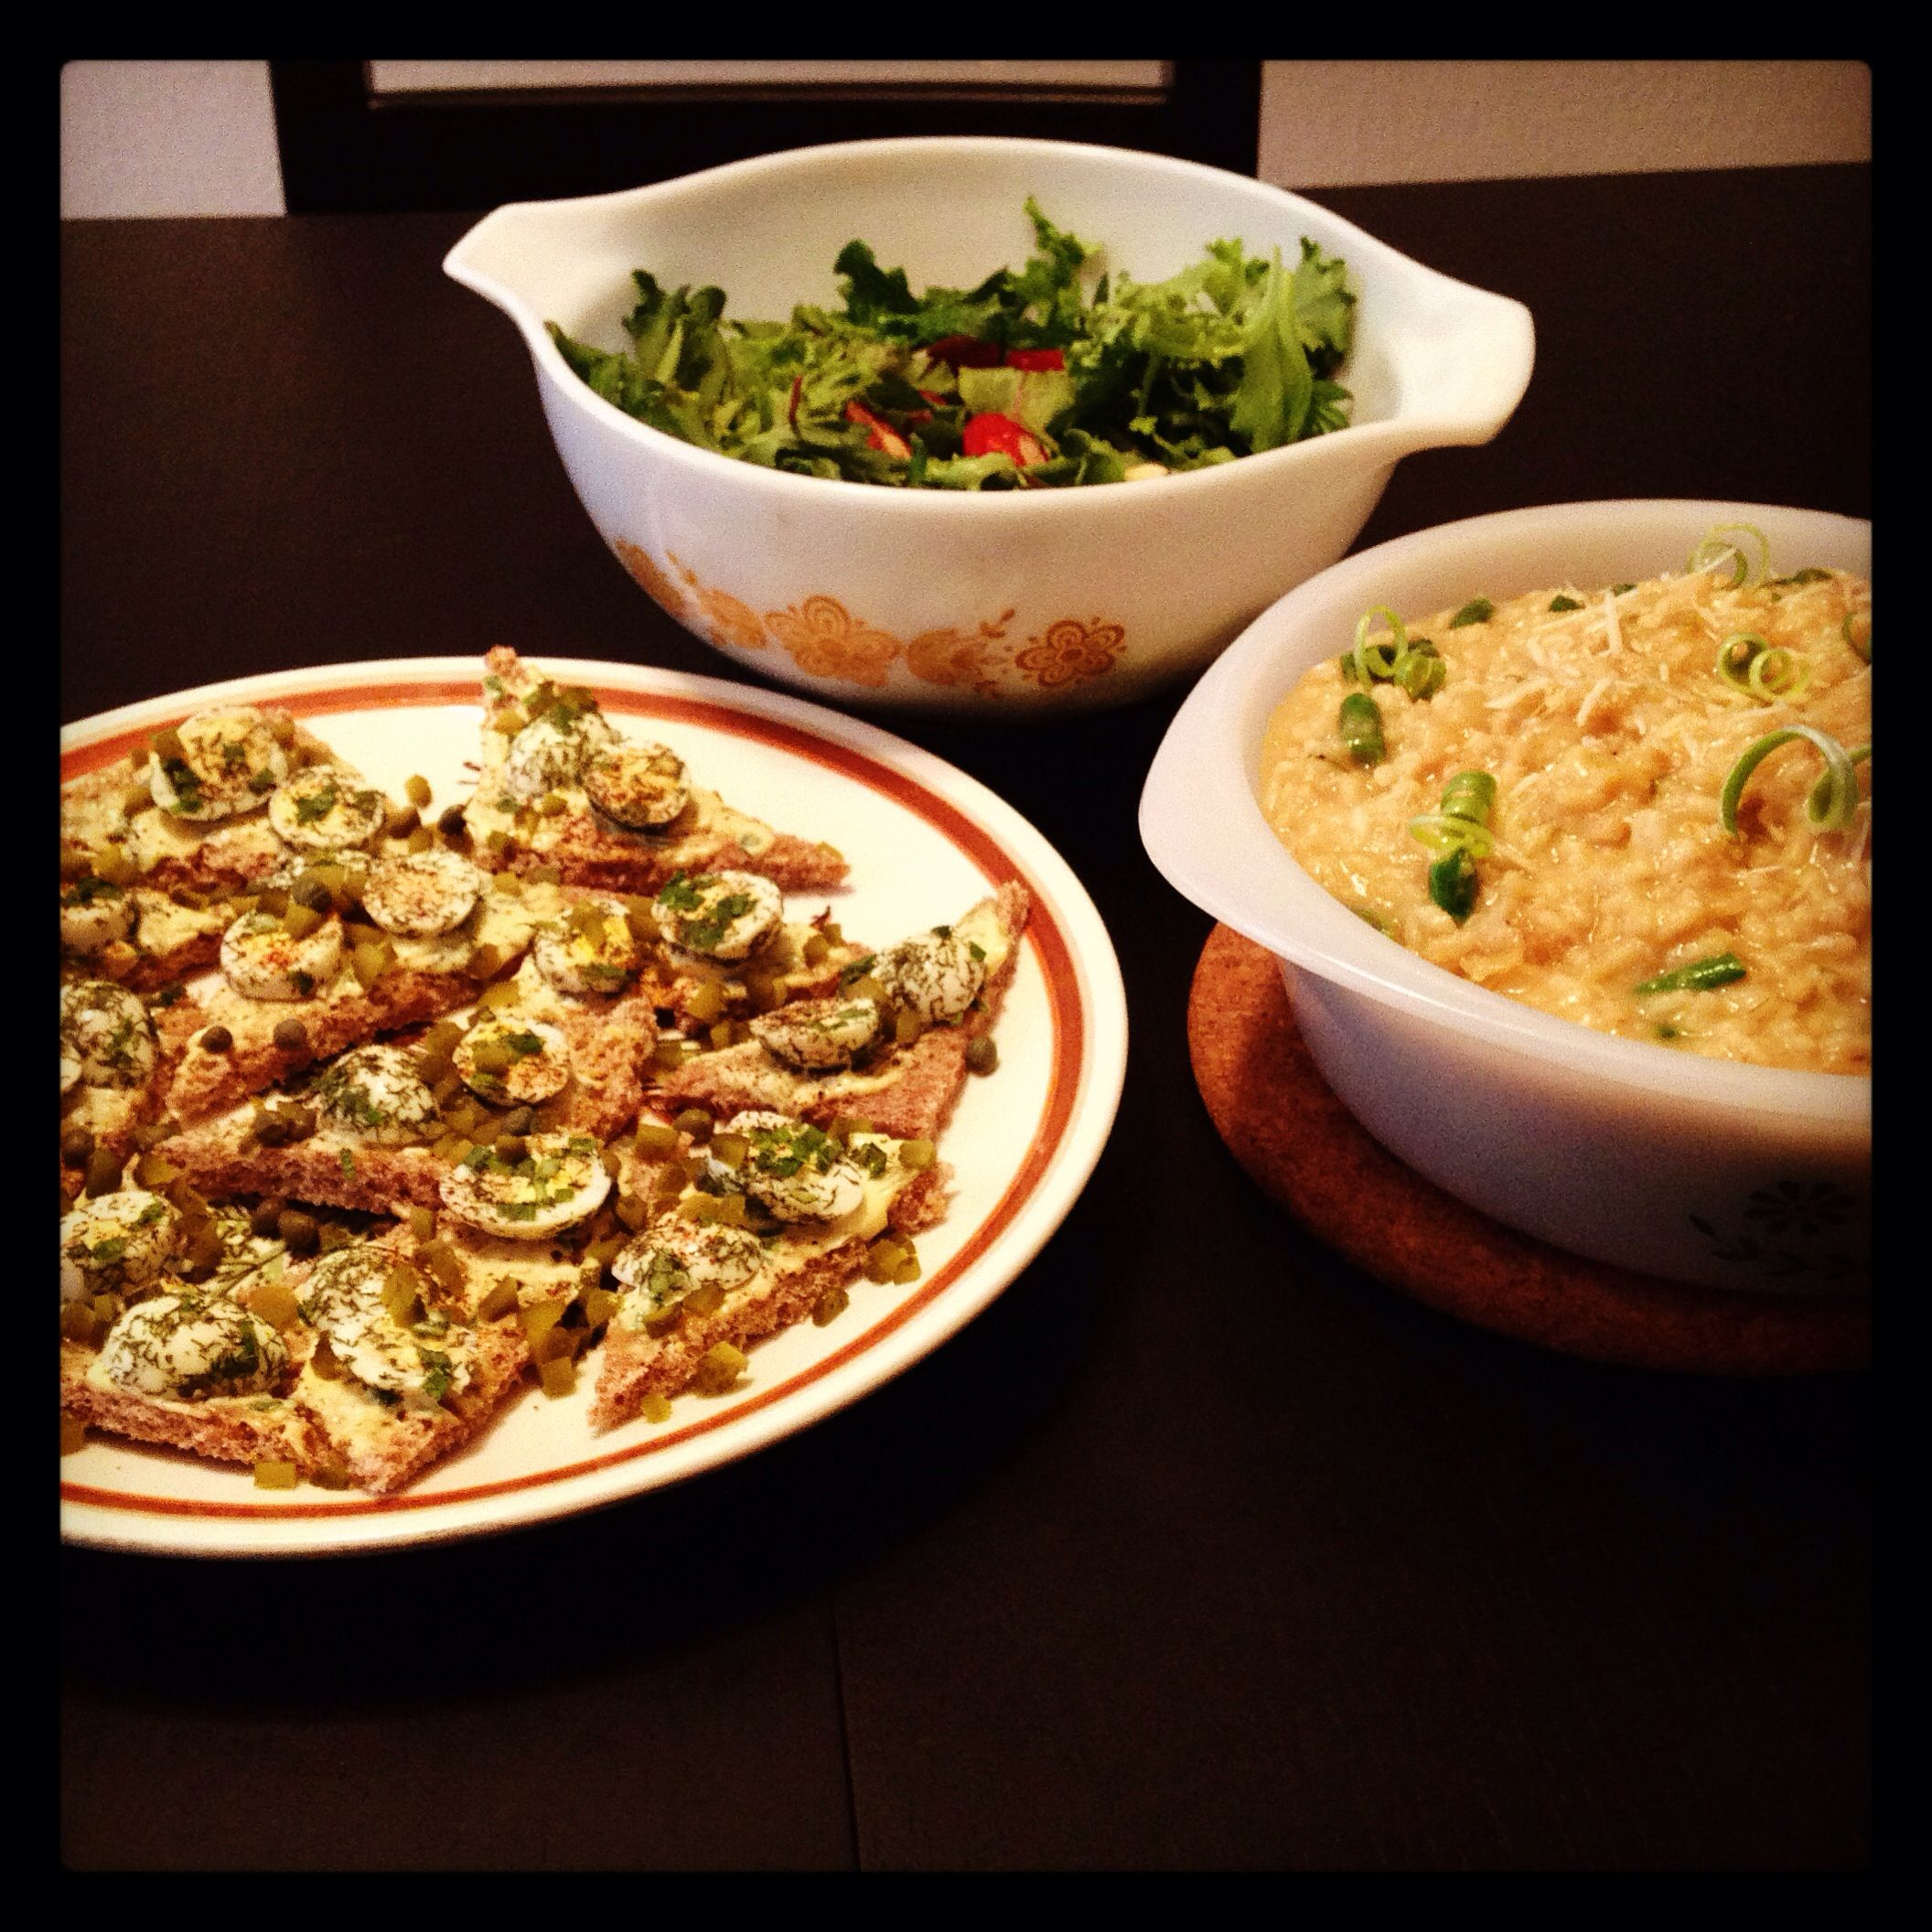 Herbed deviled quail egg bruschetta, risotto and simple salad.